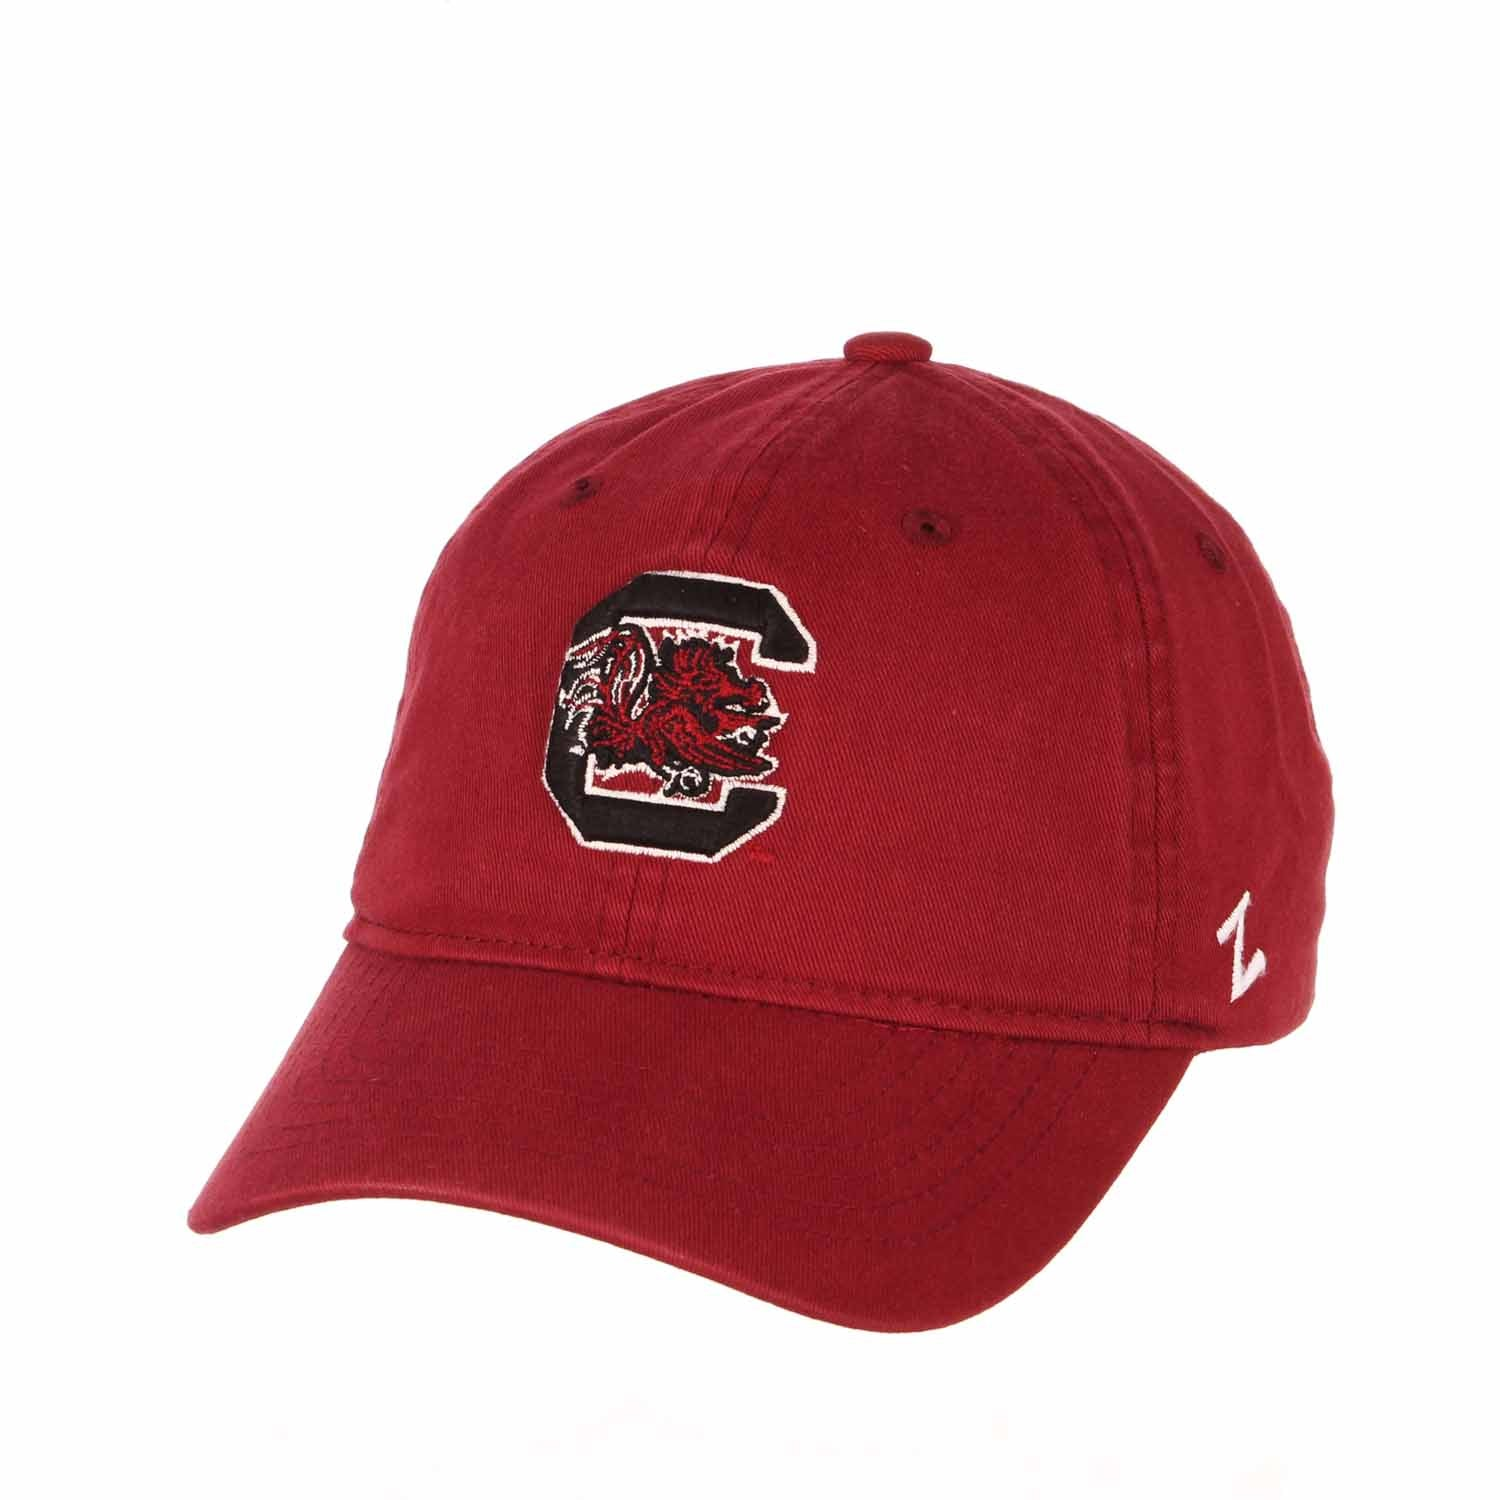 Adult NCAA All-American Relaxed Adjustable Hat (South Carolina Gamecocks - Maroon)